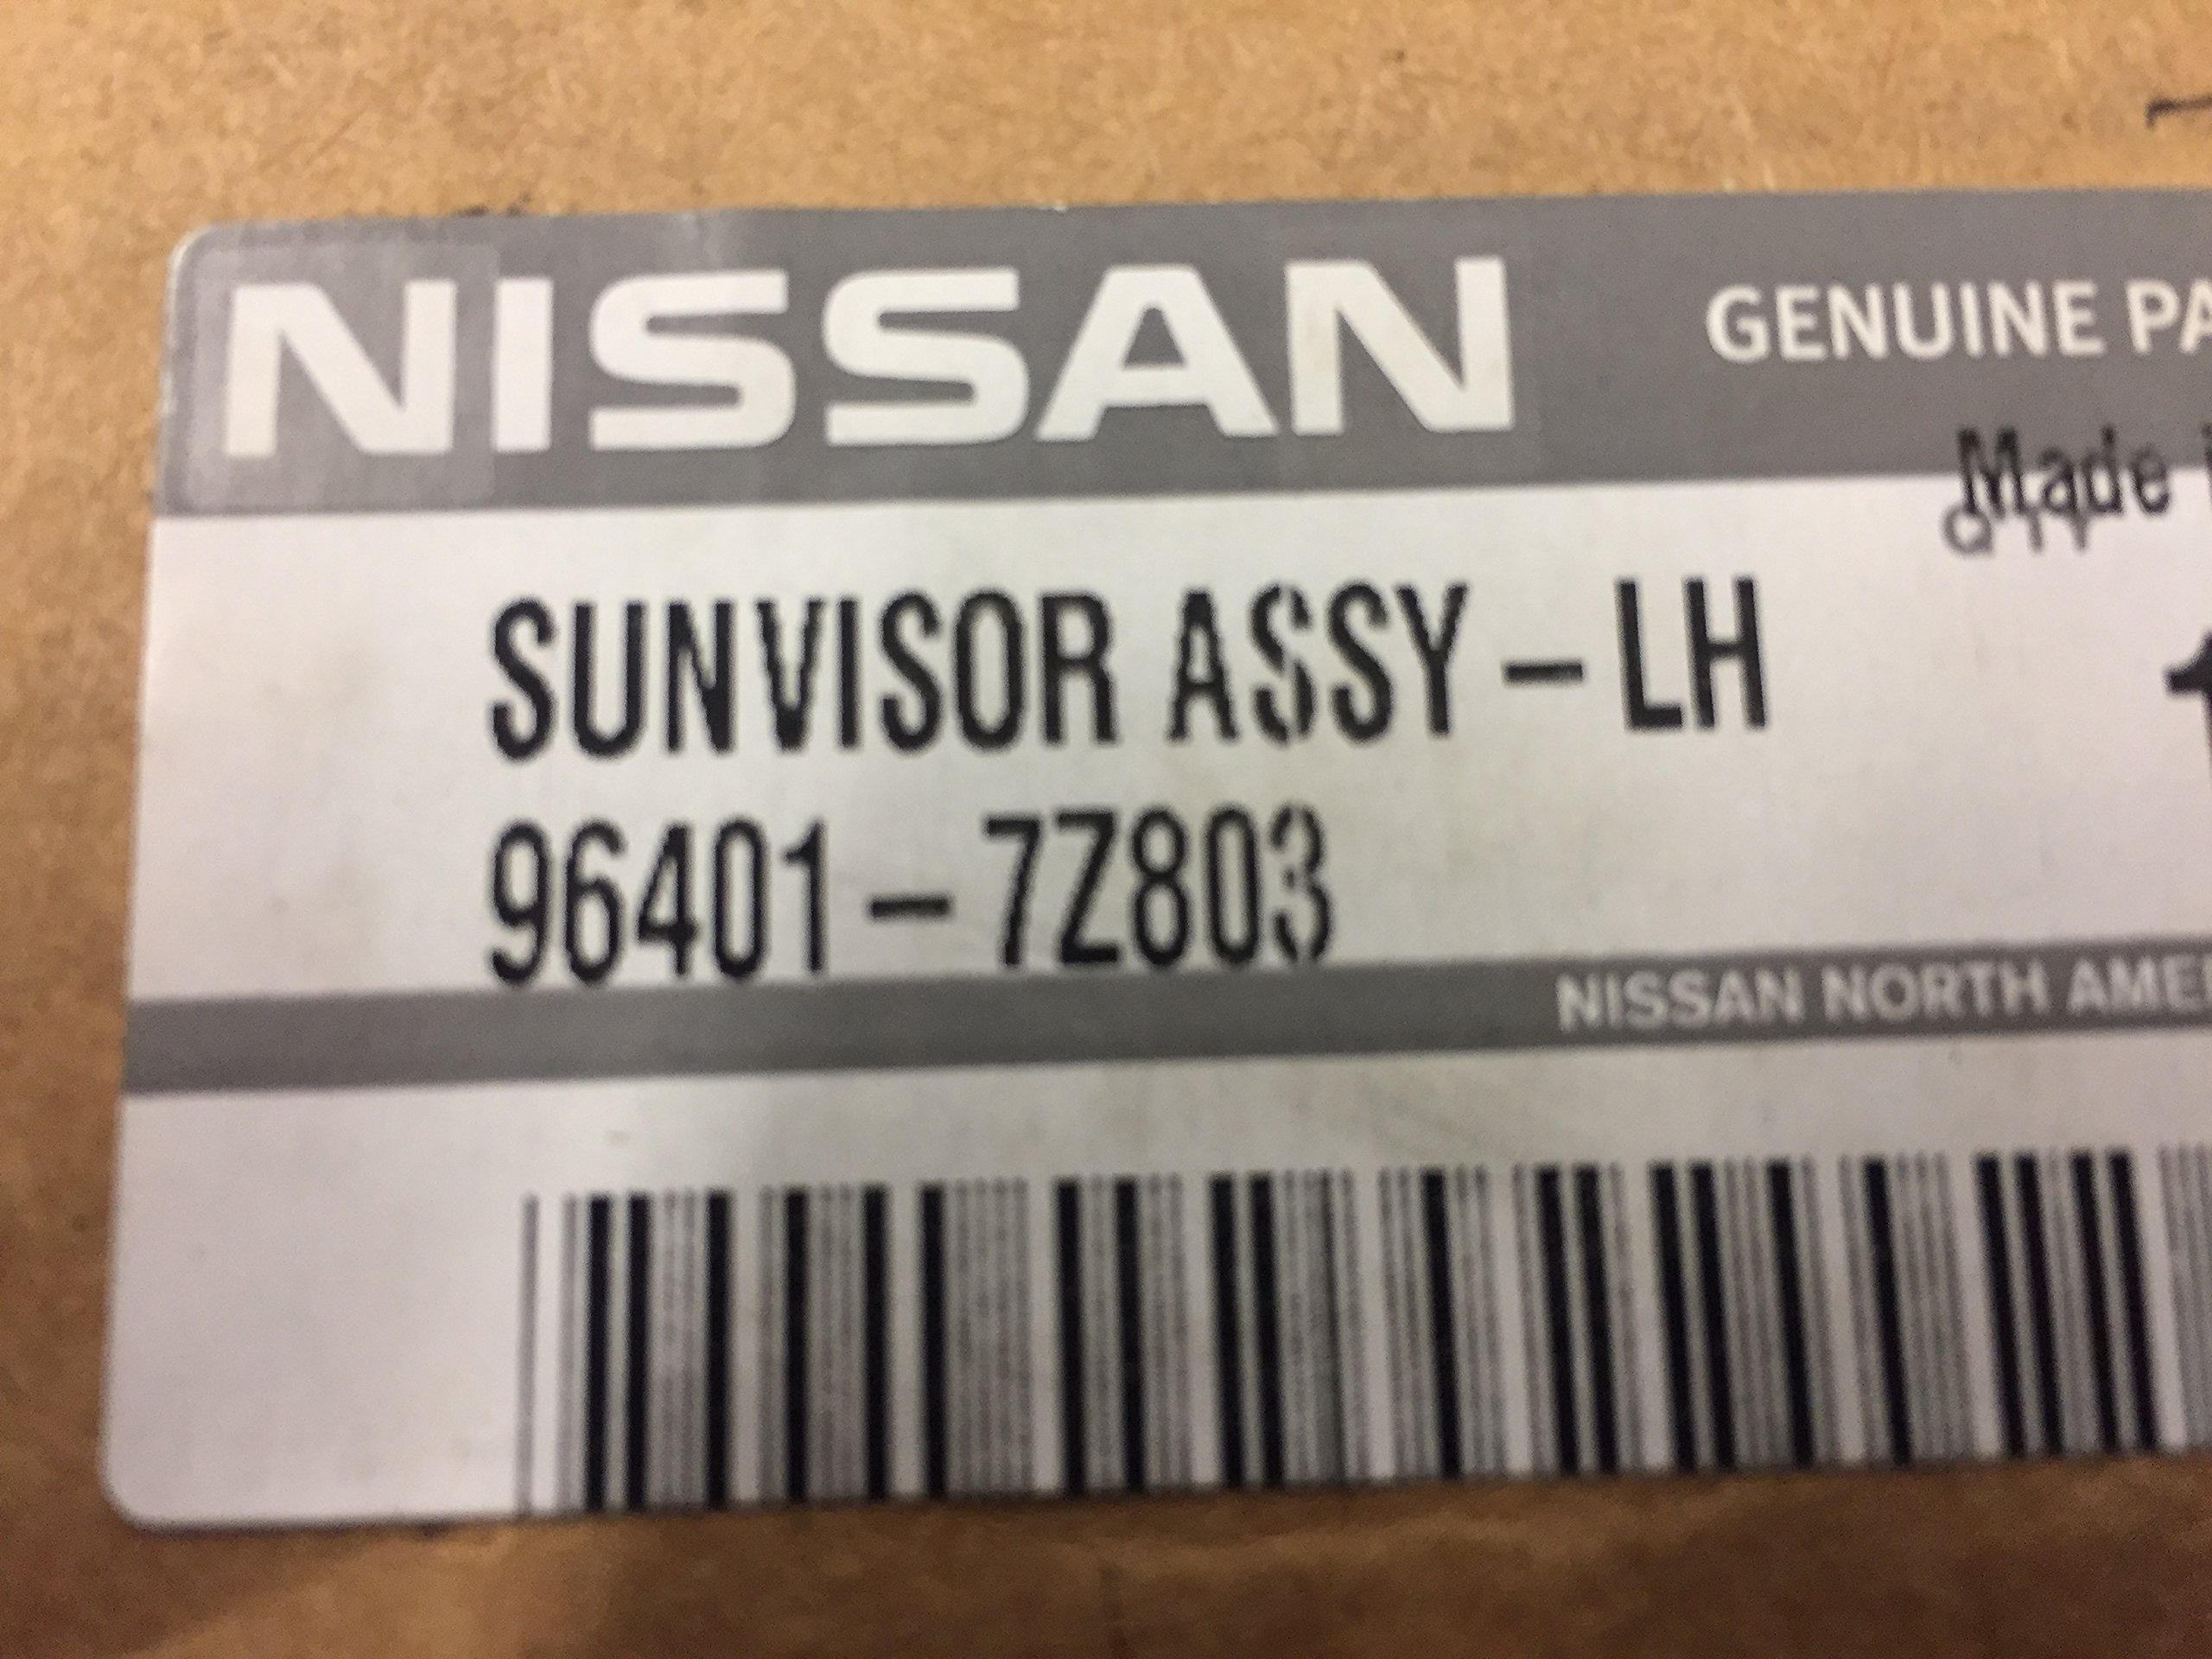 NEW OEM NISSAN 2002-2004 XTERRA / FRONTIER LEFT SIDE SUNVISOR - GREY IN COLOR by Nissan (Image #3)